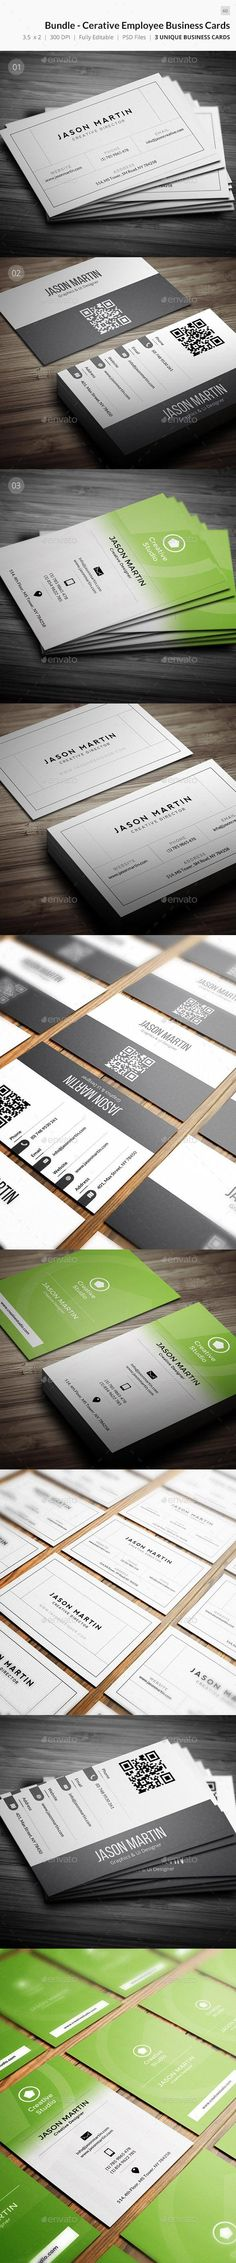 Buy Bundle - Cerative Employee Business Cards - 60 by bouncy on GraphicRiver. Creative Business Cards Bundle – Flat Business Cards for Any Individual/Companies. Here you can find each item Indivi. Fashion Business Cards, Professional Business Card Design, Unique Business Cards, Creative Business, Background Templates, Card Templates, Flyer Template, Business Card Design Inspiration, Card Designs